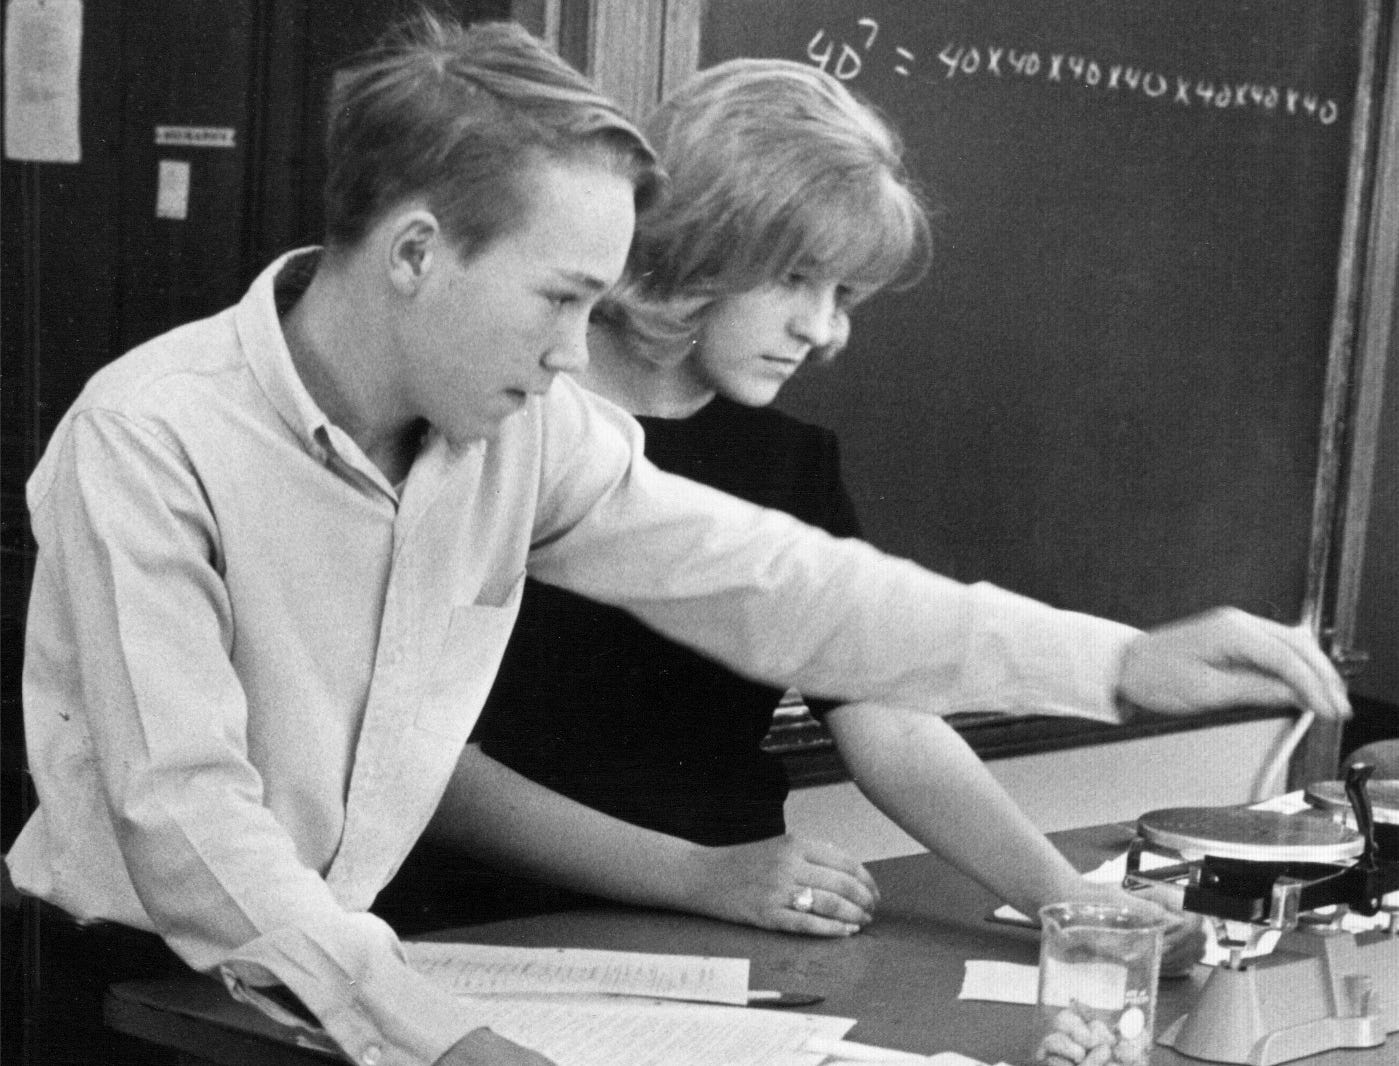 Larry Williams and Linda Holman work to determine the mass of a peanut in 1968. Wood High School was the only school in Indiana and one of 27 in the country to try the quantitative physical science program developed by Duke University.